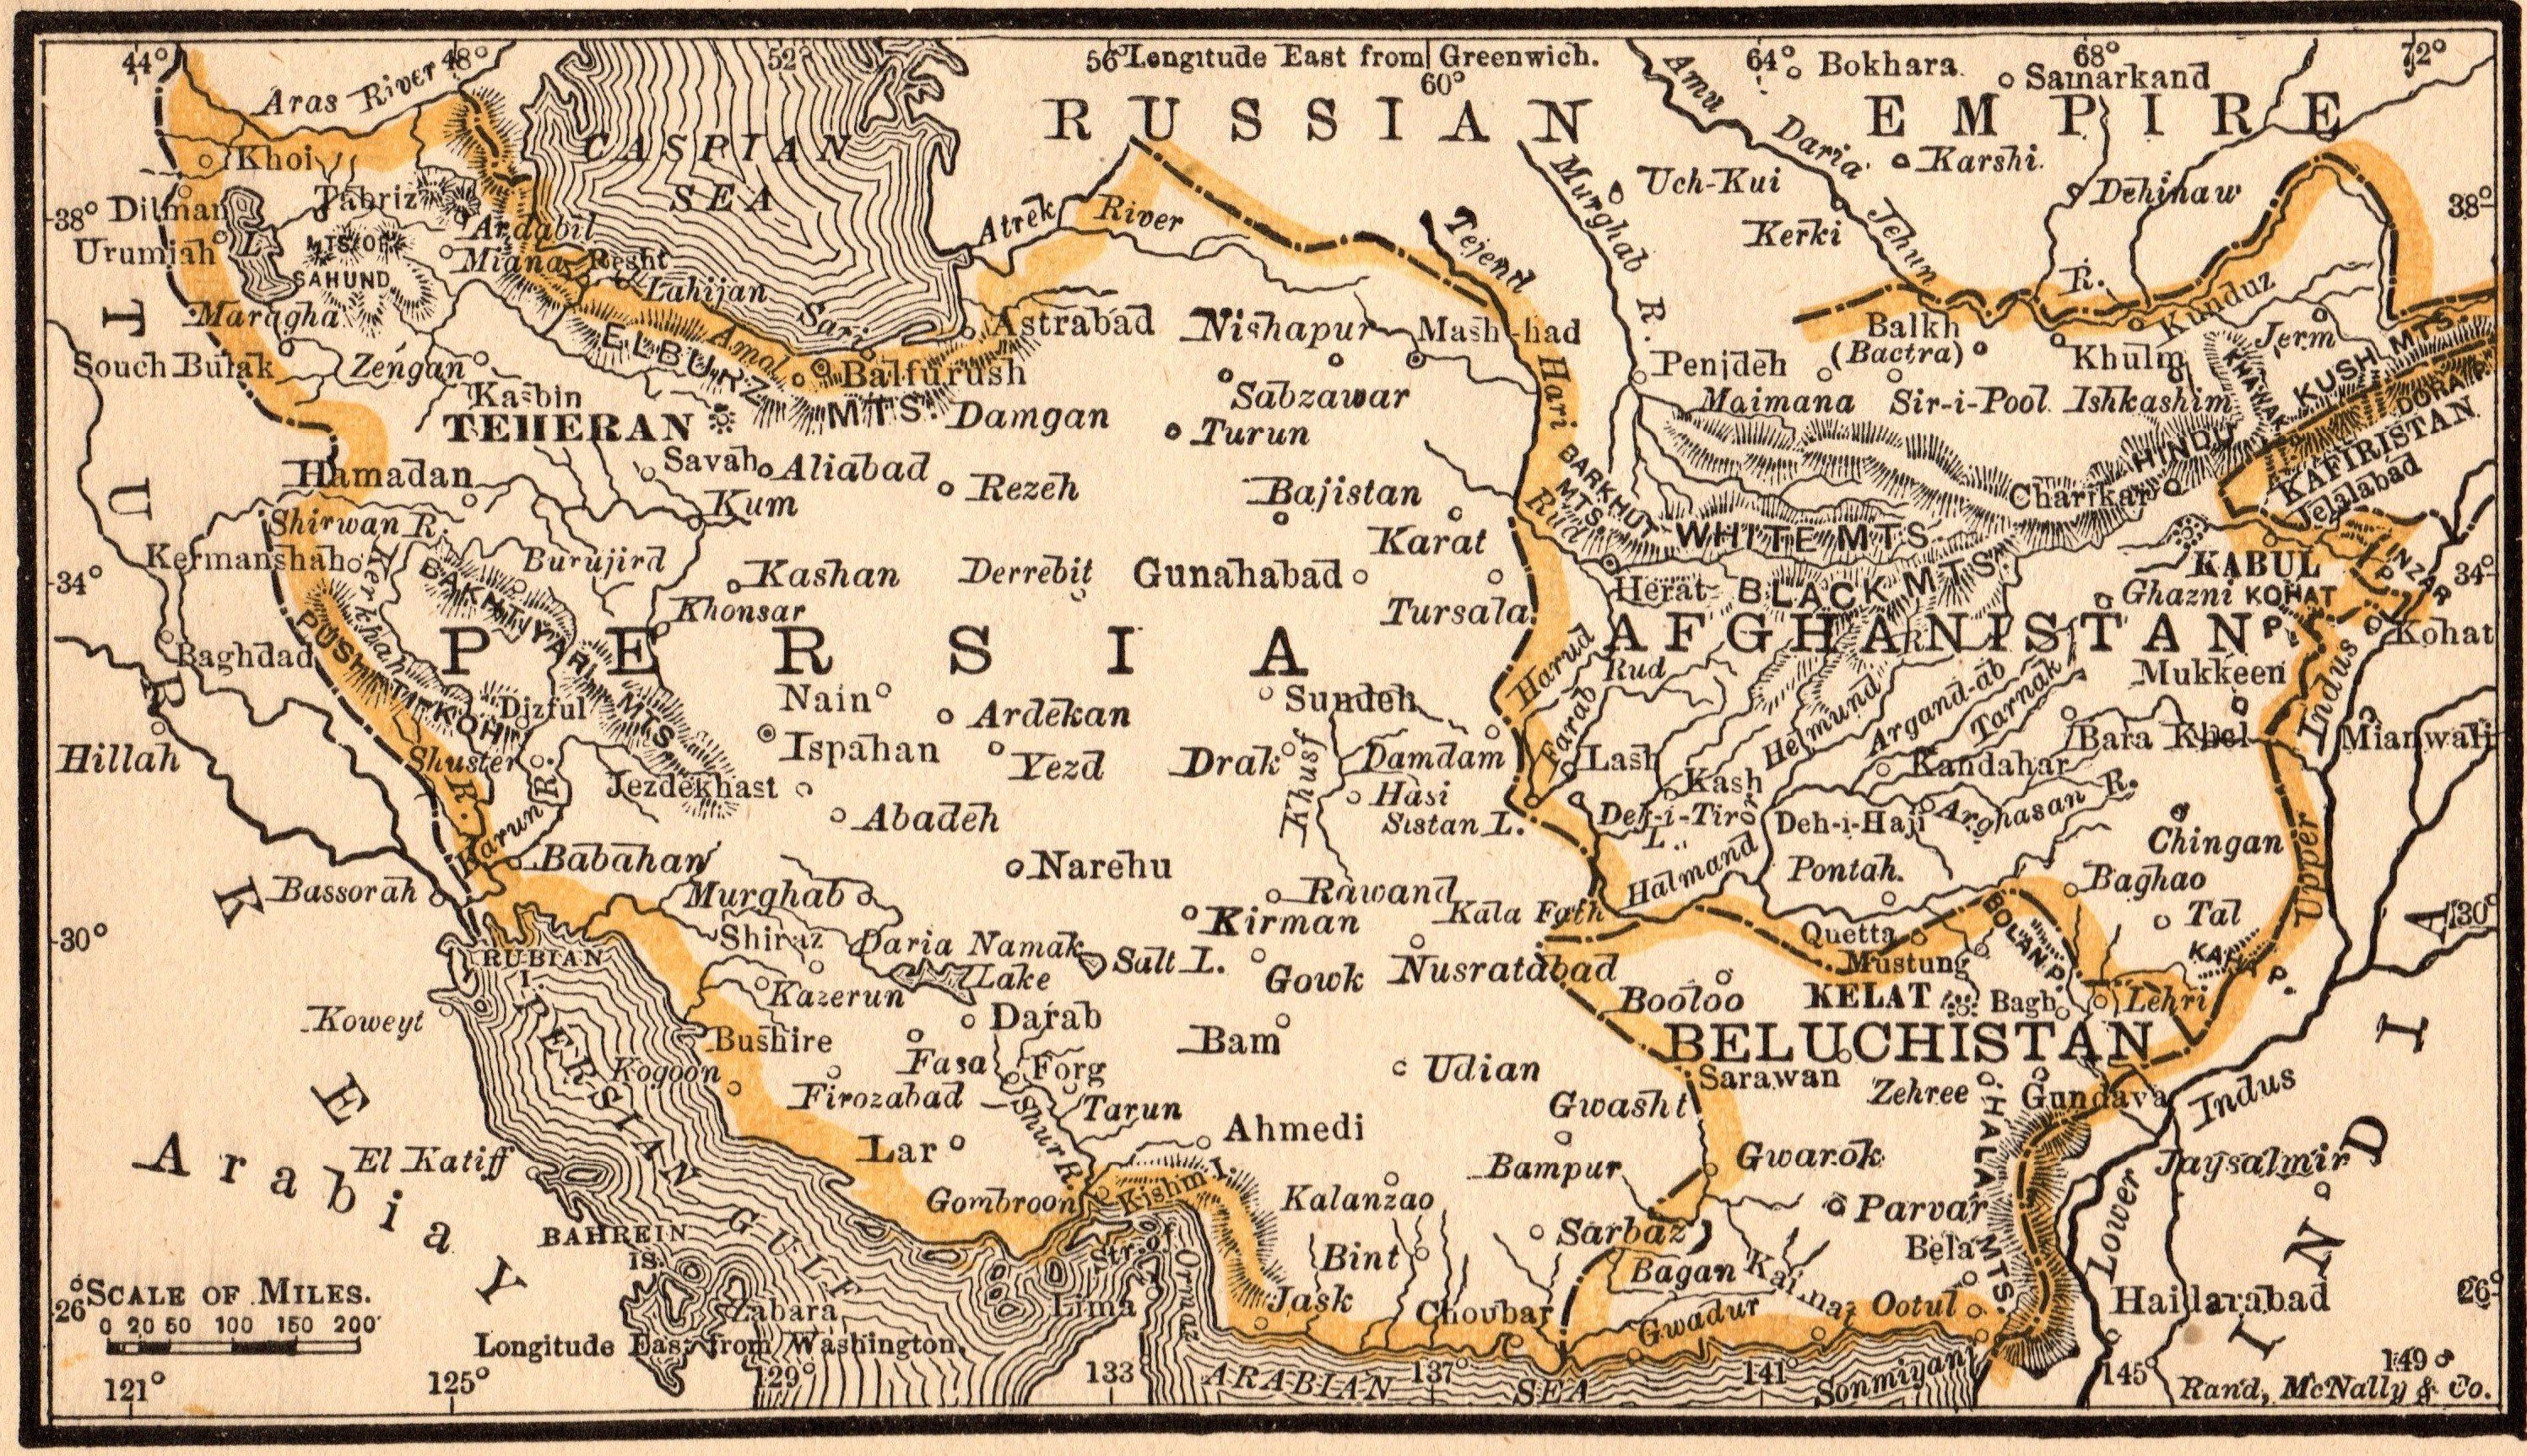 1888 Antique AFGHANISTAN Map Persia Map Iraq Map Iran ... on hangzhou on world map, omsk world map, merv world map, ctesiphon world map, cappadocia world map, urumqi world map, cordoba world map, golan heights world map, kazan world map, konya world map, jalalabad world map, calicut world map, suzhou world map, bukhara world map, manzikert on a world map, malacca on world map, aqaba world map, guangzhou world map, genoa world map, eastern asia world map,